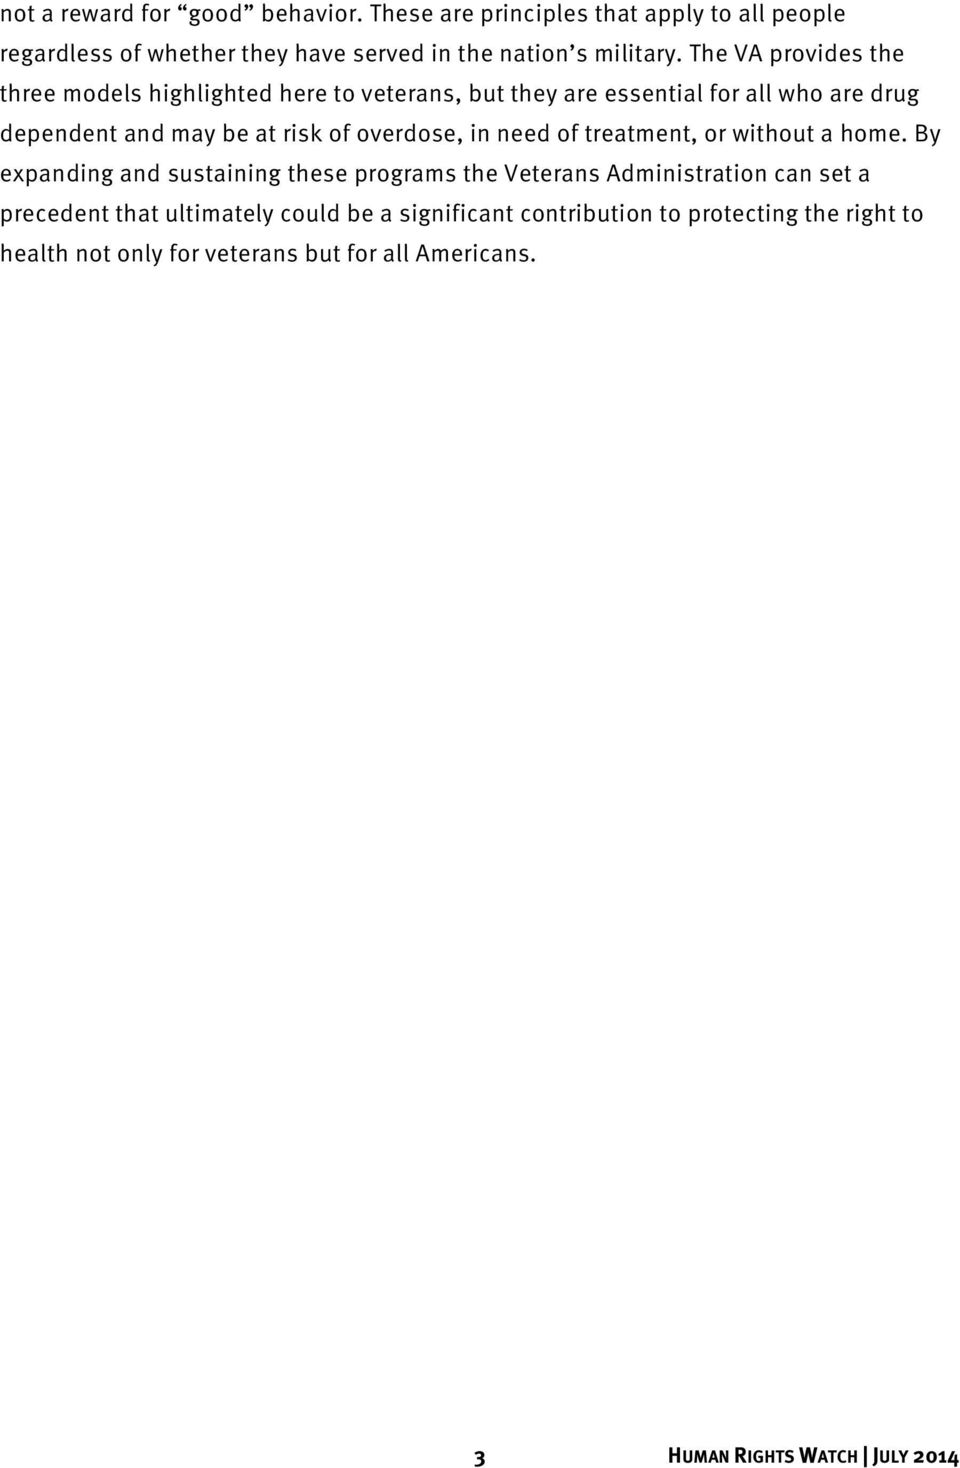 overdose, in need of treatment, or without a home.